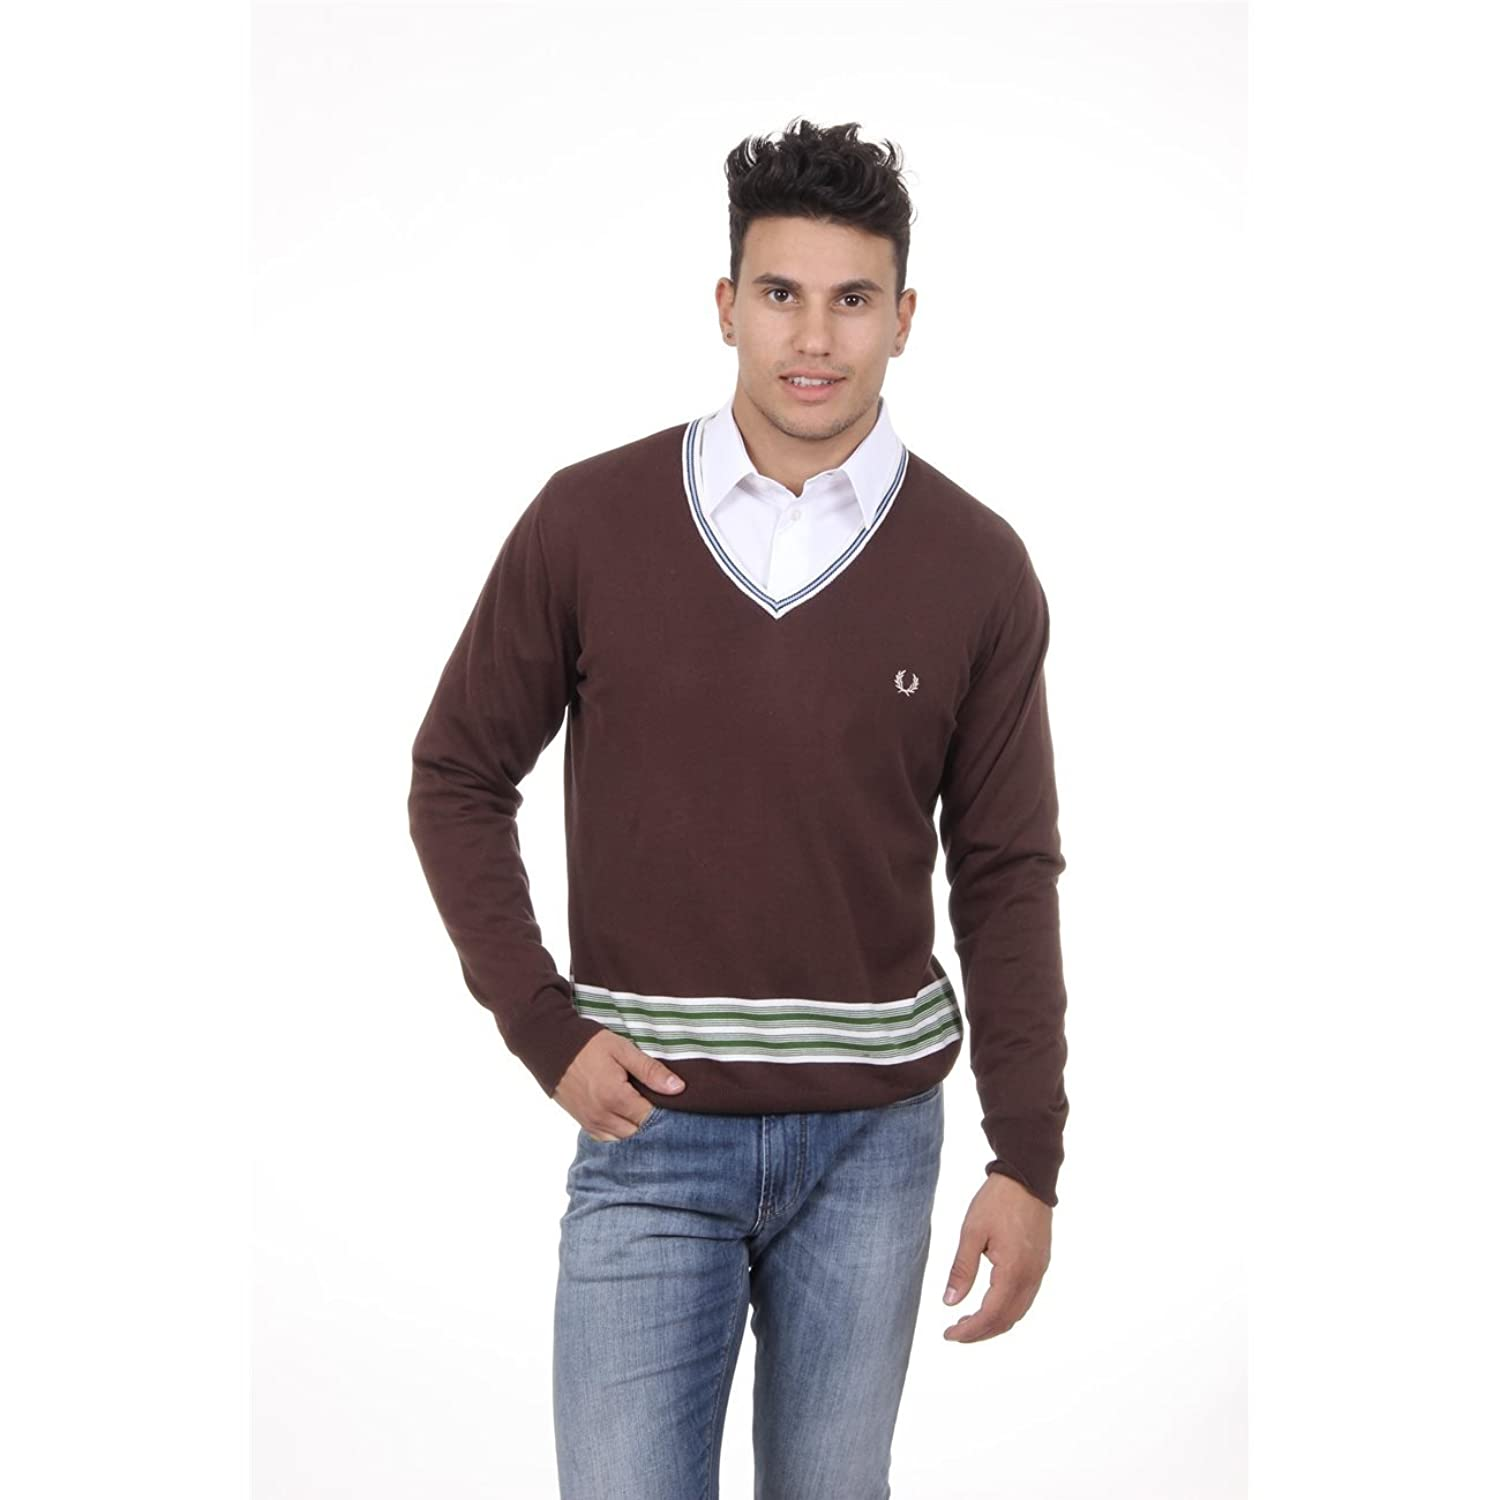 Fred perry mens sweater 30412108 0031 large hot sale 2016 for Fred perry mens shirts sale